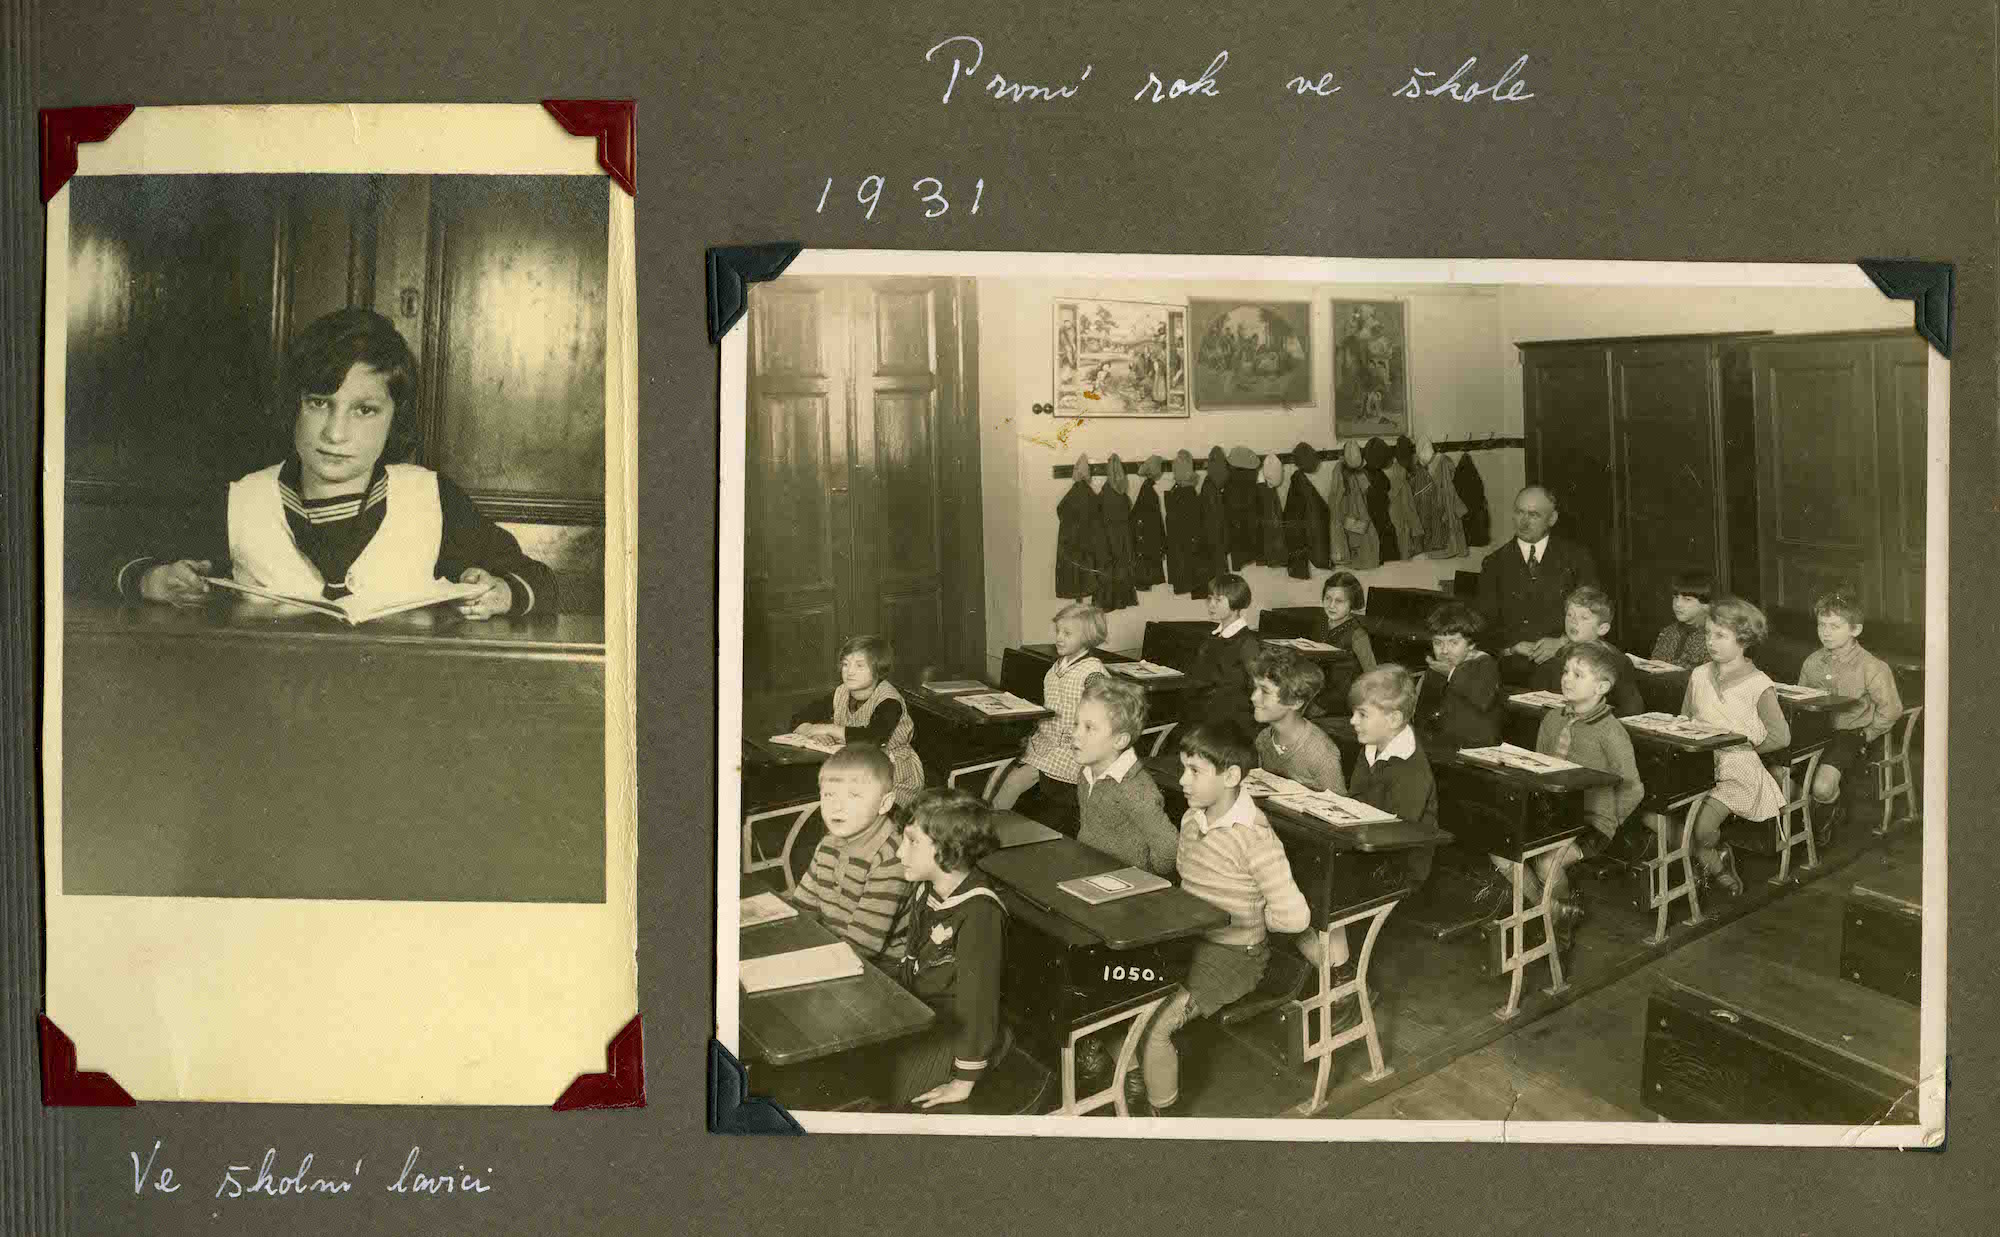 Hana in school in Prague in 1931. Before fleeing Czechoslovakia she had attended both a German-speaking school as well as a French-speaking school making her trilingual by the time she became a teenager.